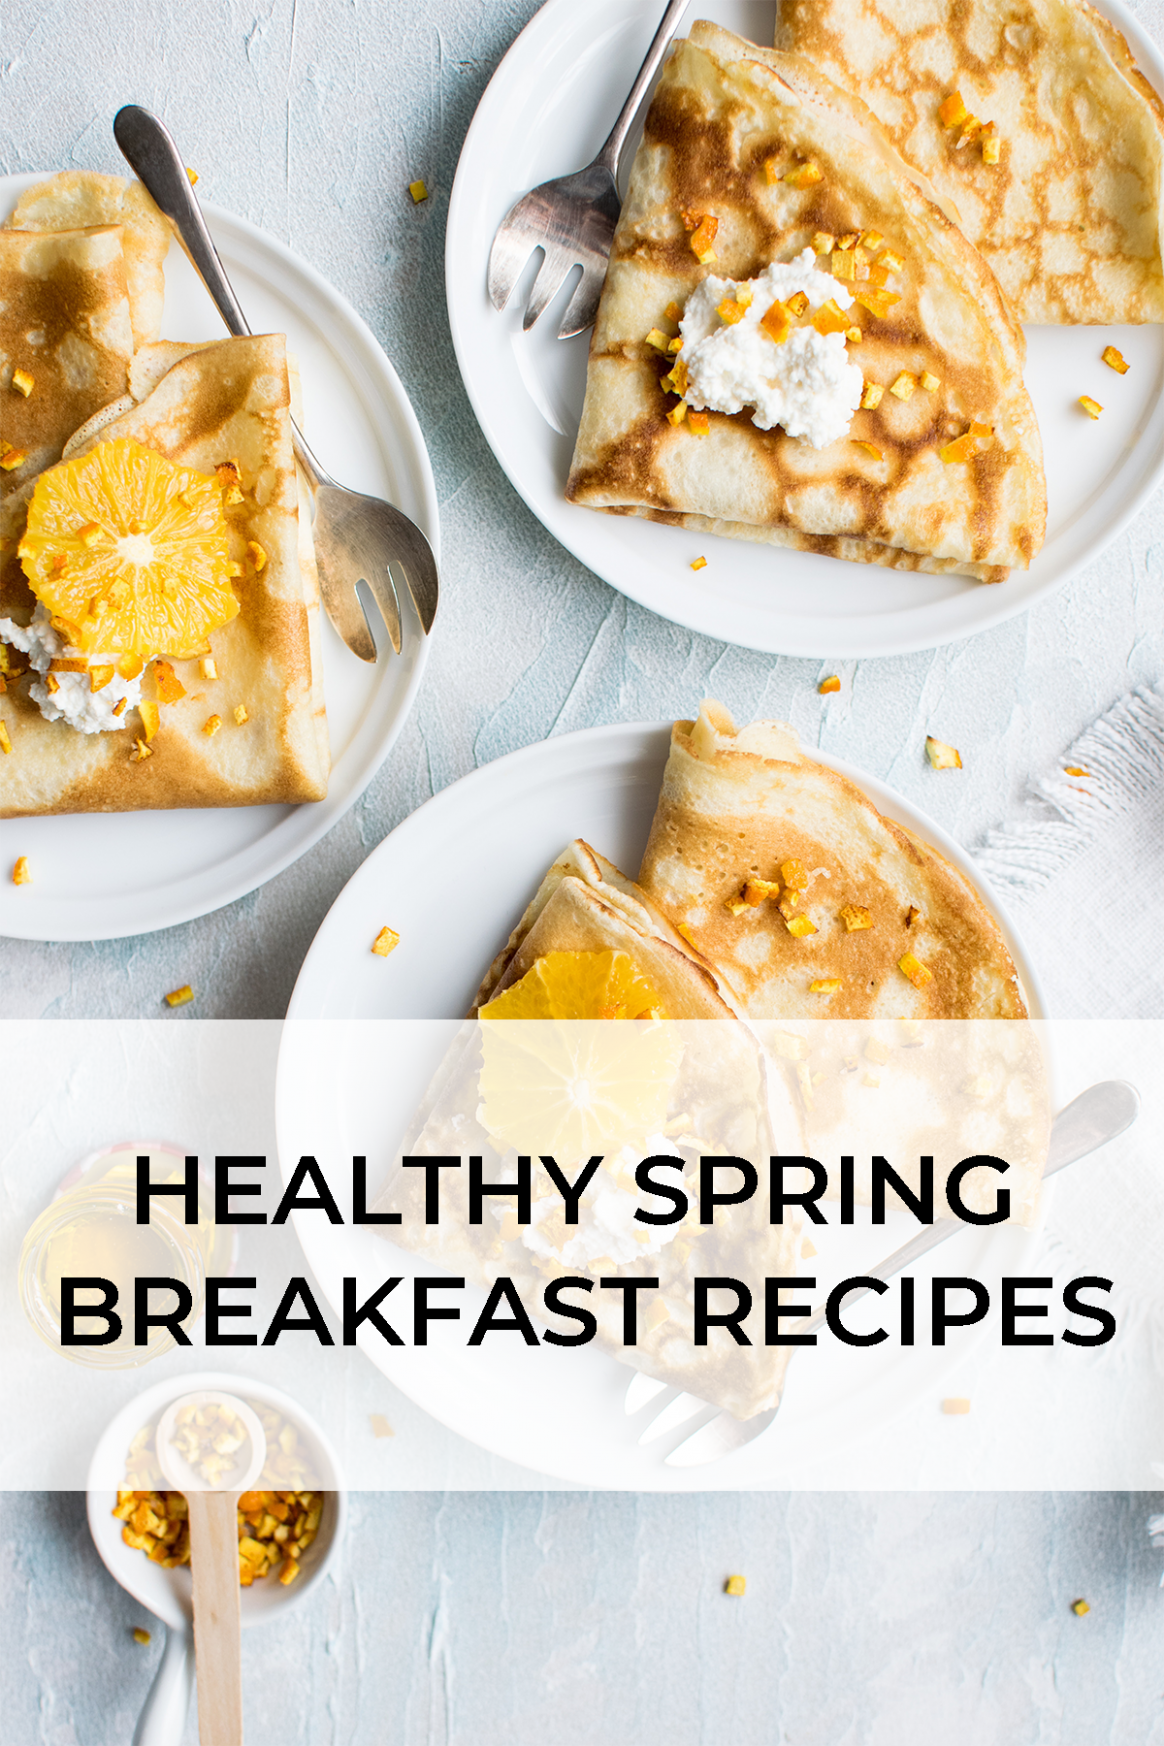 8 Must-Try Healthy Spring Breakfast Recipes | Taste of Health - Breakfast Recipes Taste